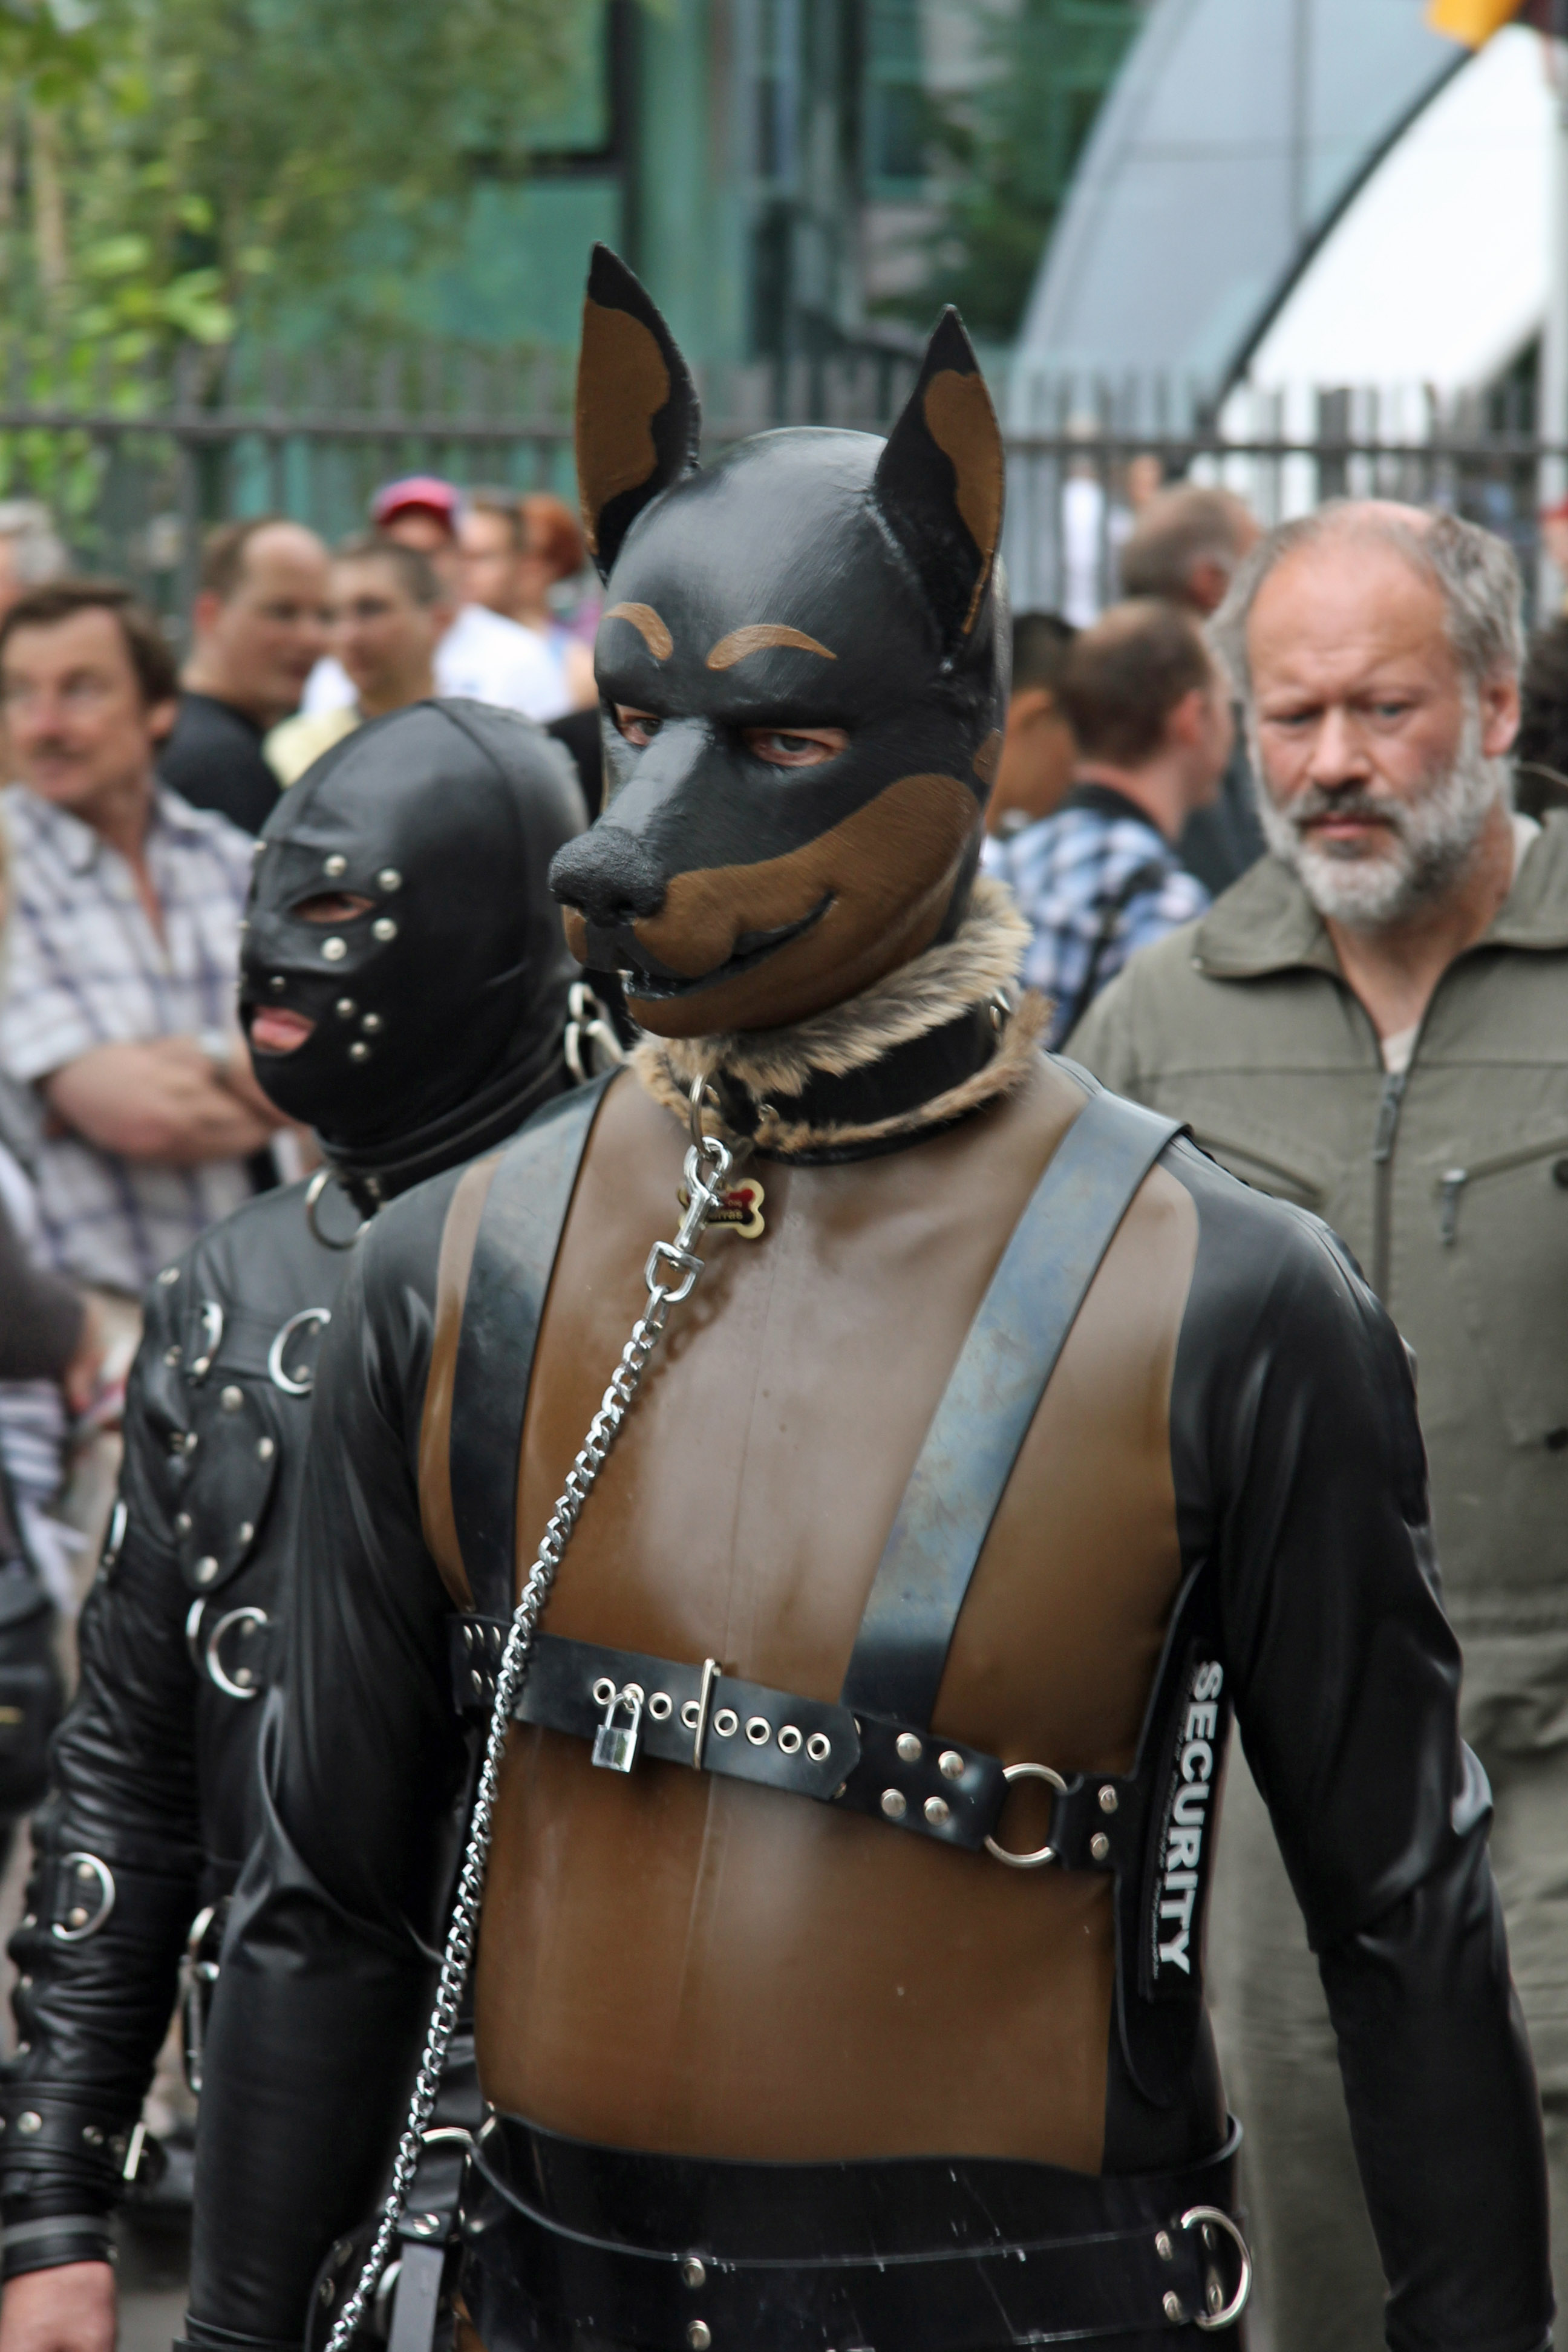 Dog Day Afternoon: A reveller in a dog collar, mask and leather suit at the Christopher Street Day (CSD) Parade in Berlin